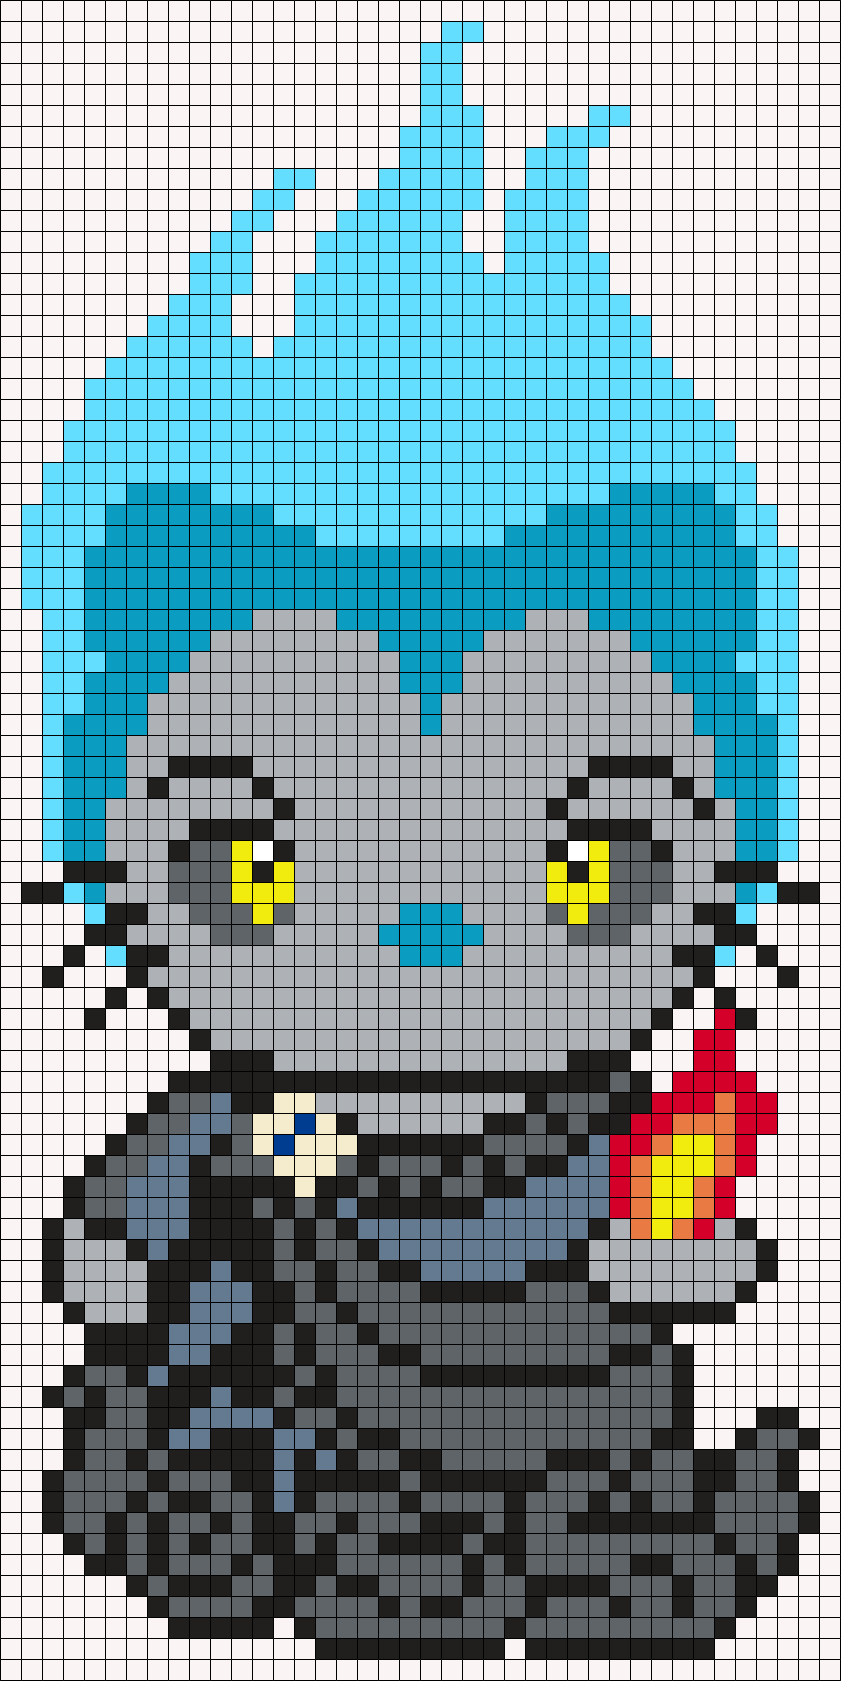 Hades From Hercules Hello Kitty Sq Perler Bead Pattern / Bead Sprite